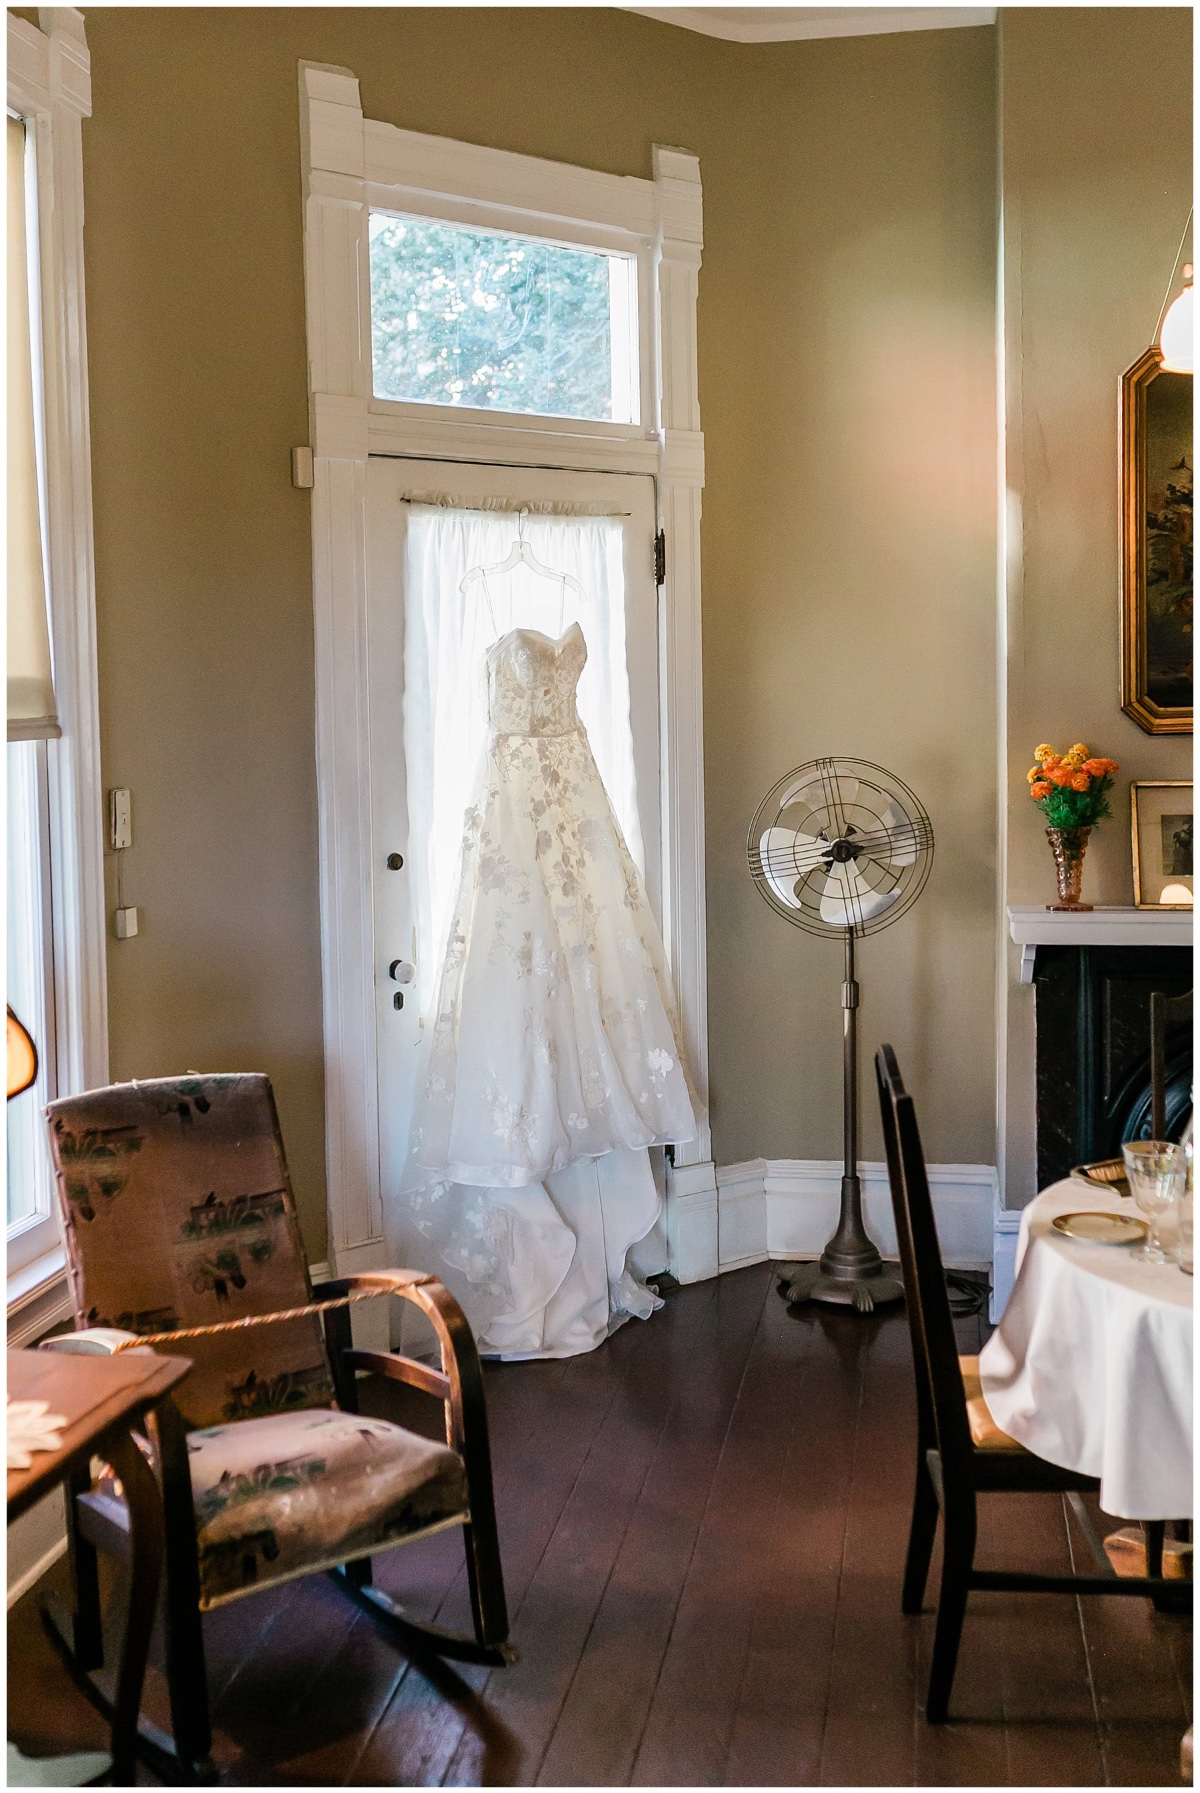 Disney's Haunted Mansion Theme Wedding at Heritage Square Museum in Los Angeles